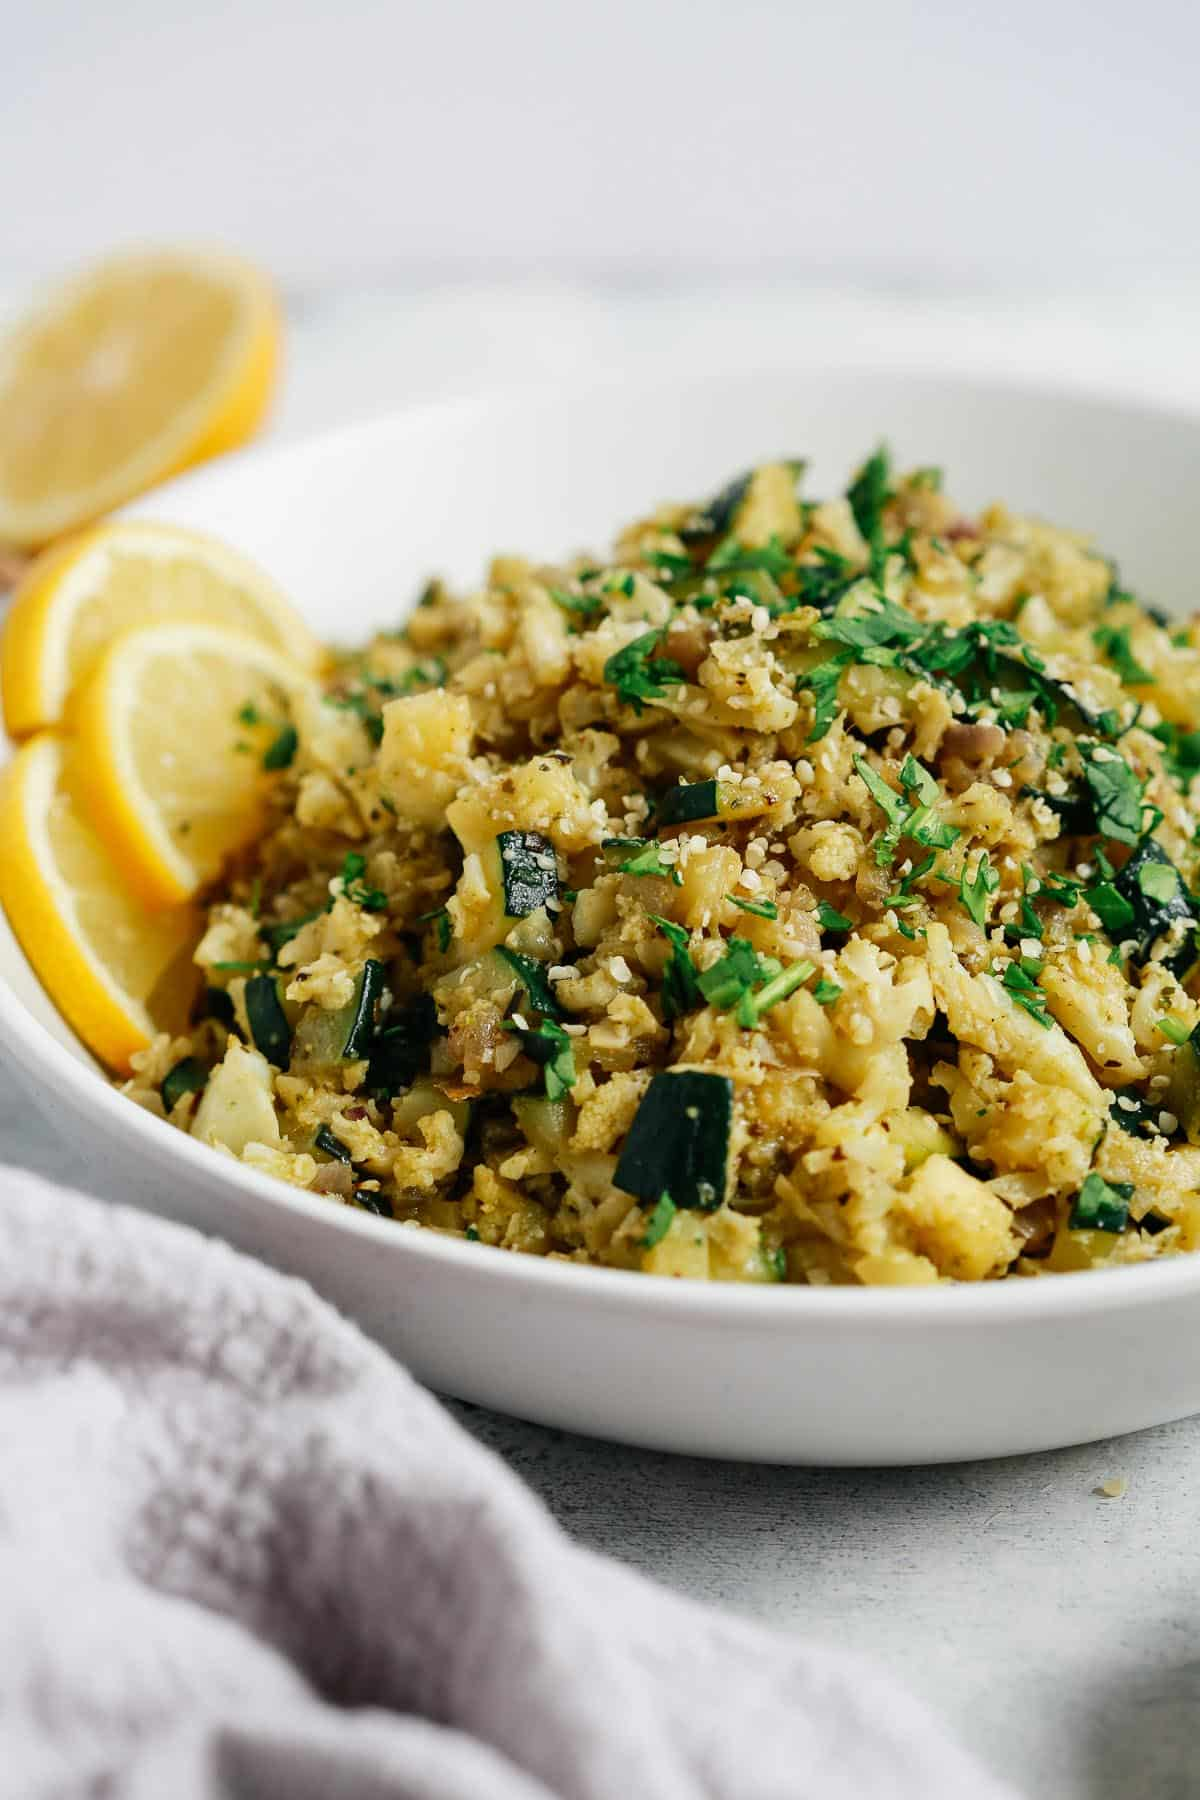 cauliflower rice in a white bowl